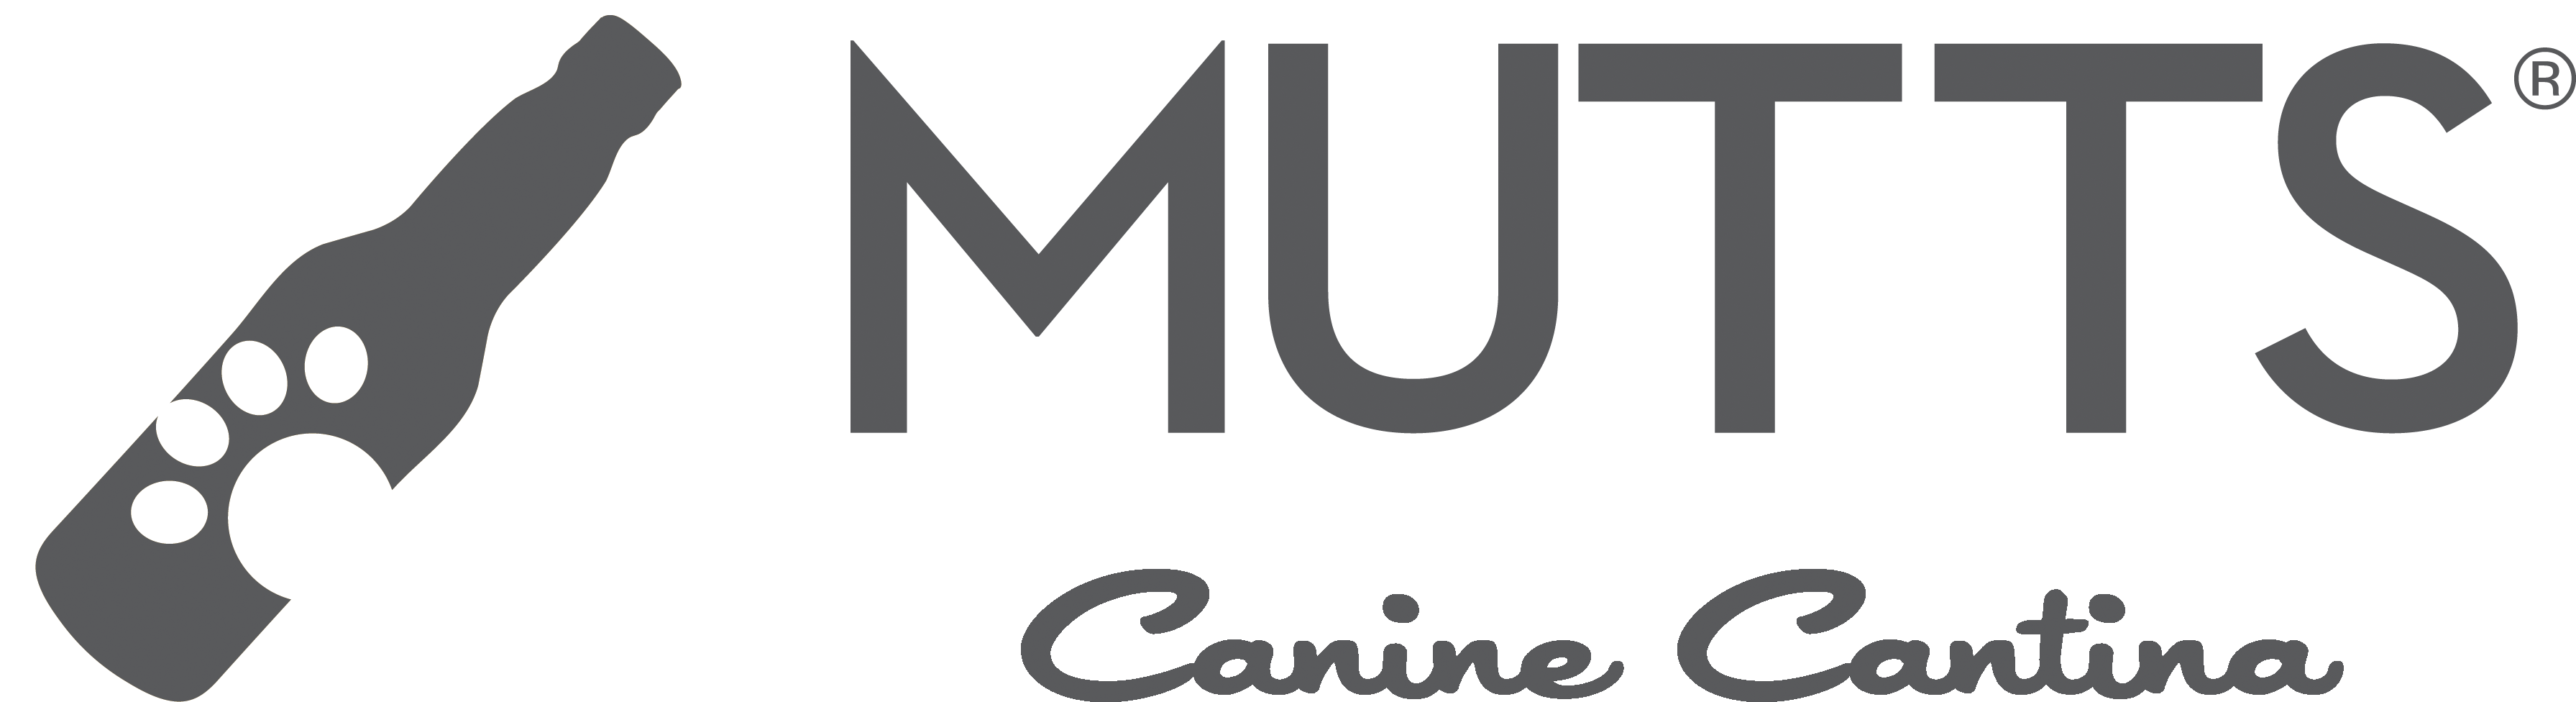 Mutts Canine Cantina – Great place for outdoors, dogs, and beverages